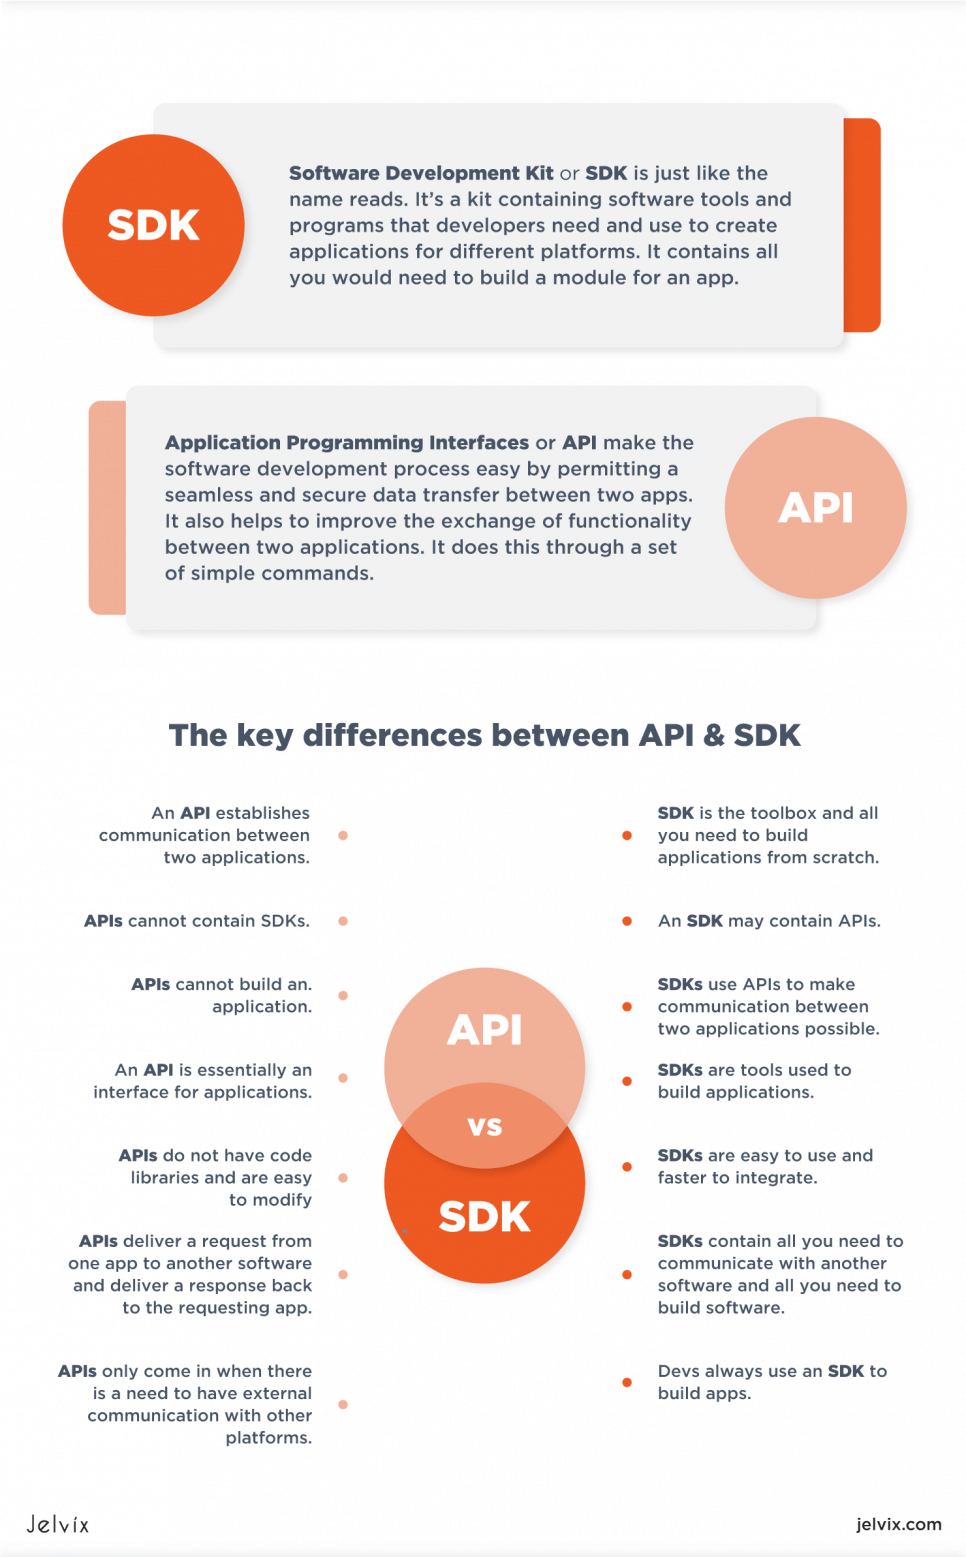 SDK vs. API: What's the Difference?